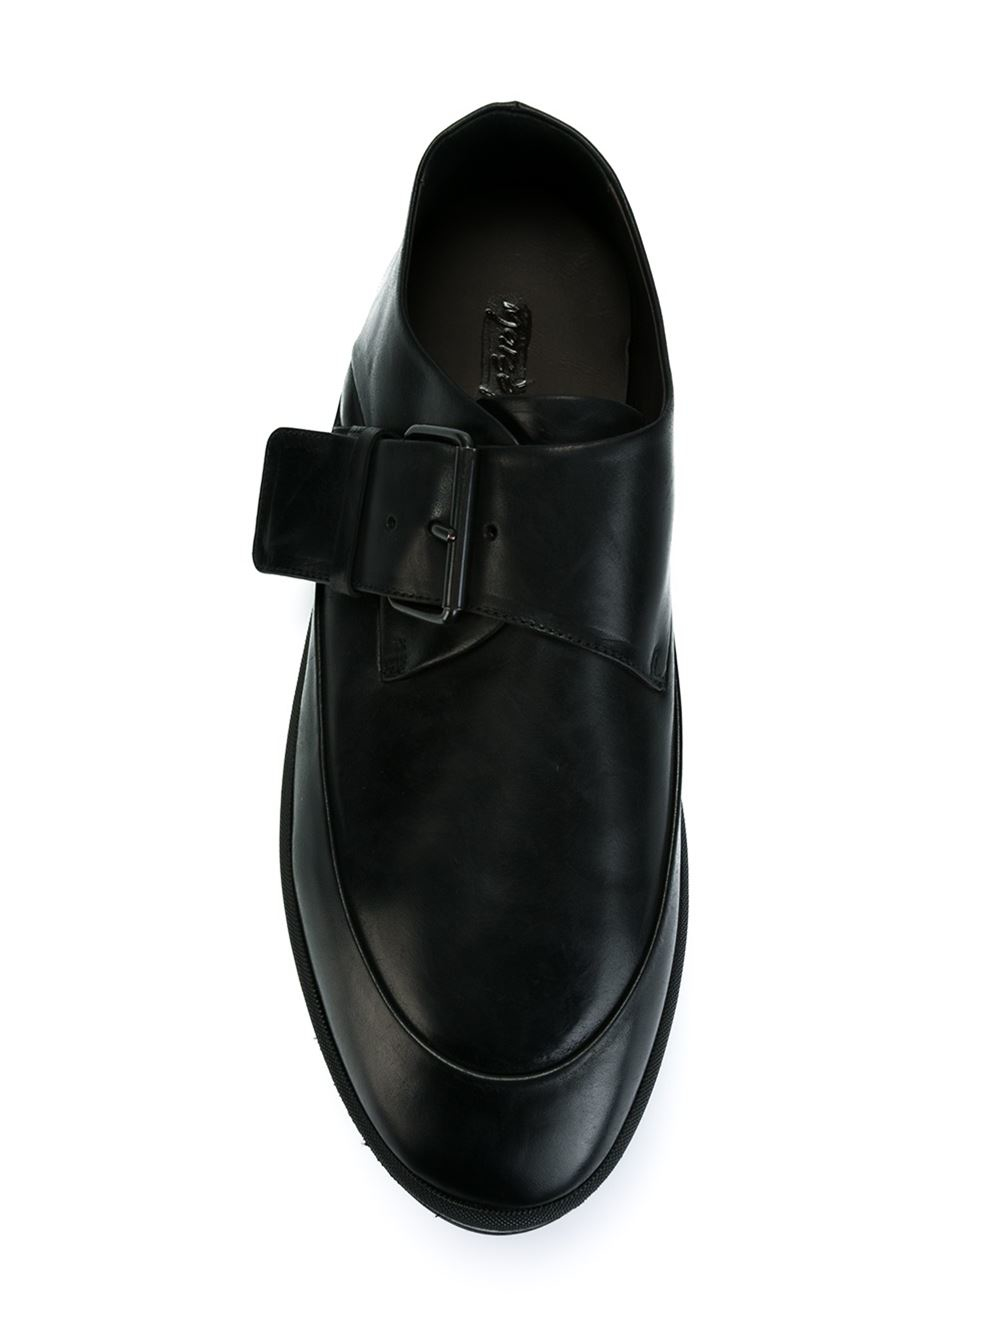 monk strap shoes - Black Mars dW2y684WE9